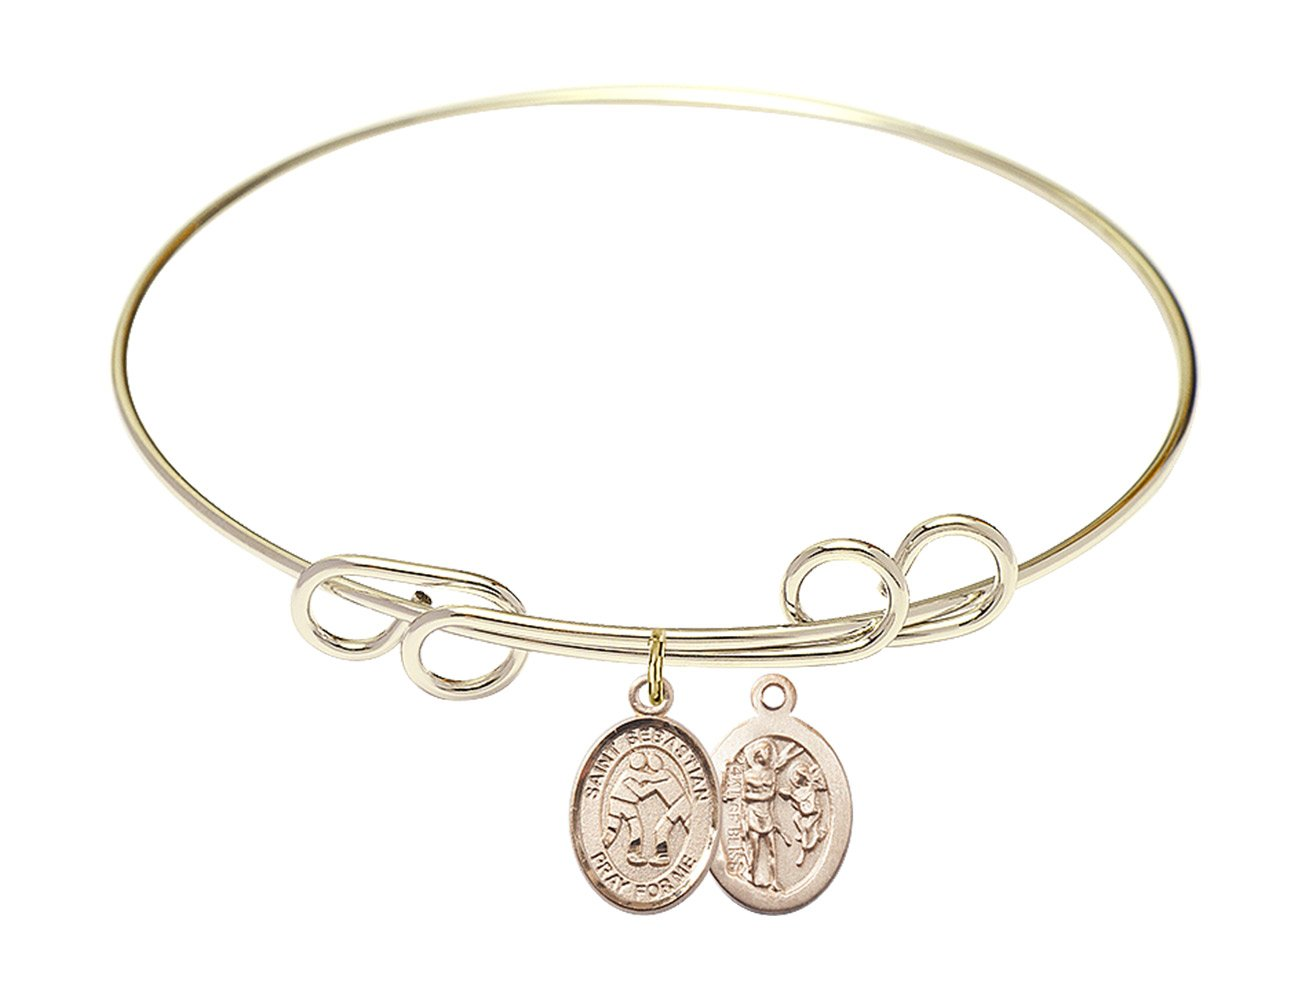 8 inch Round Double Loop Bangle Bracelet with a St. Sebastian/Wrestling charm.